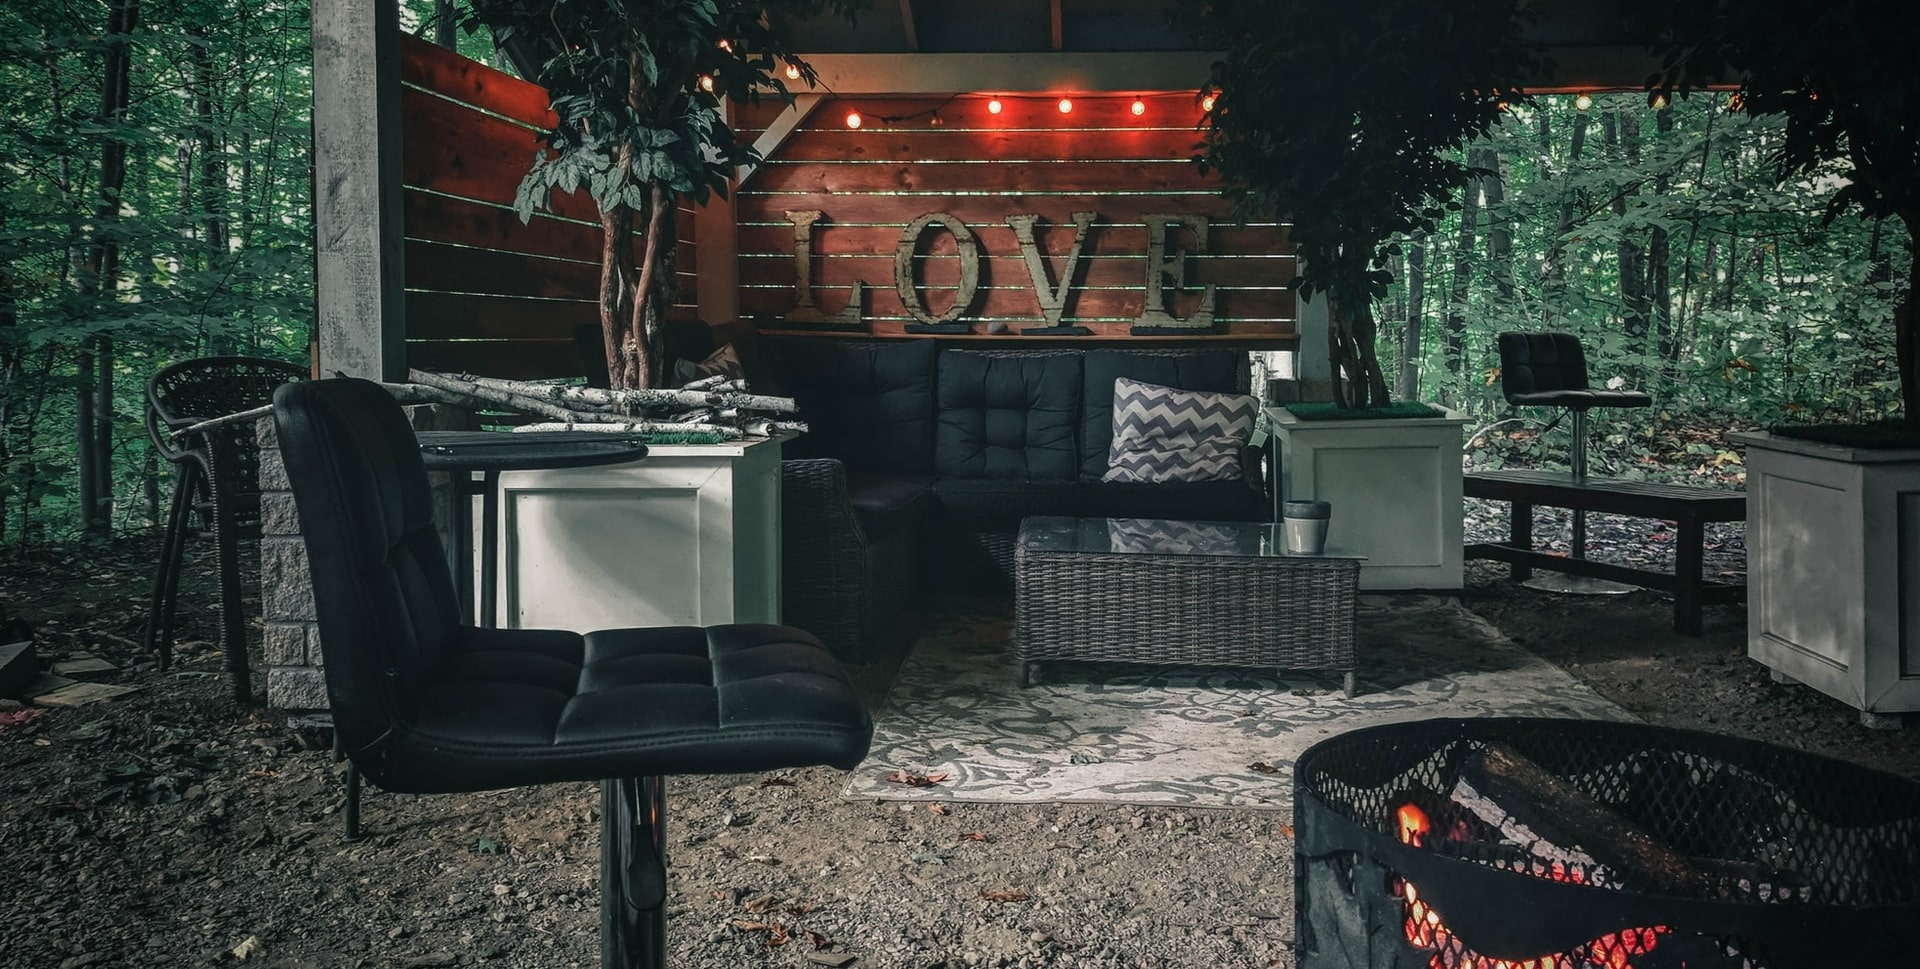 A glamping living space with comfortable furniture and a fire pit